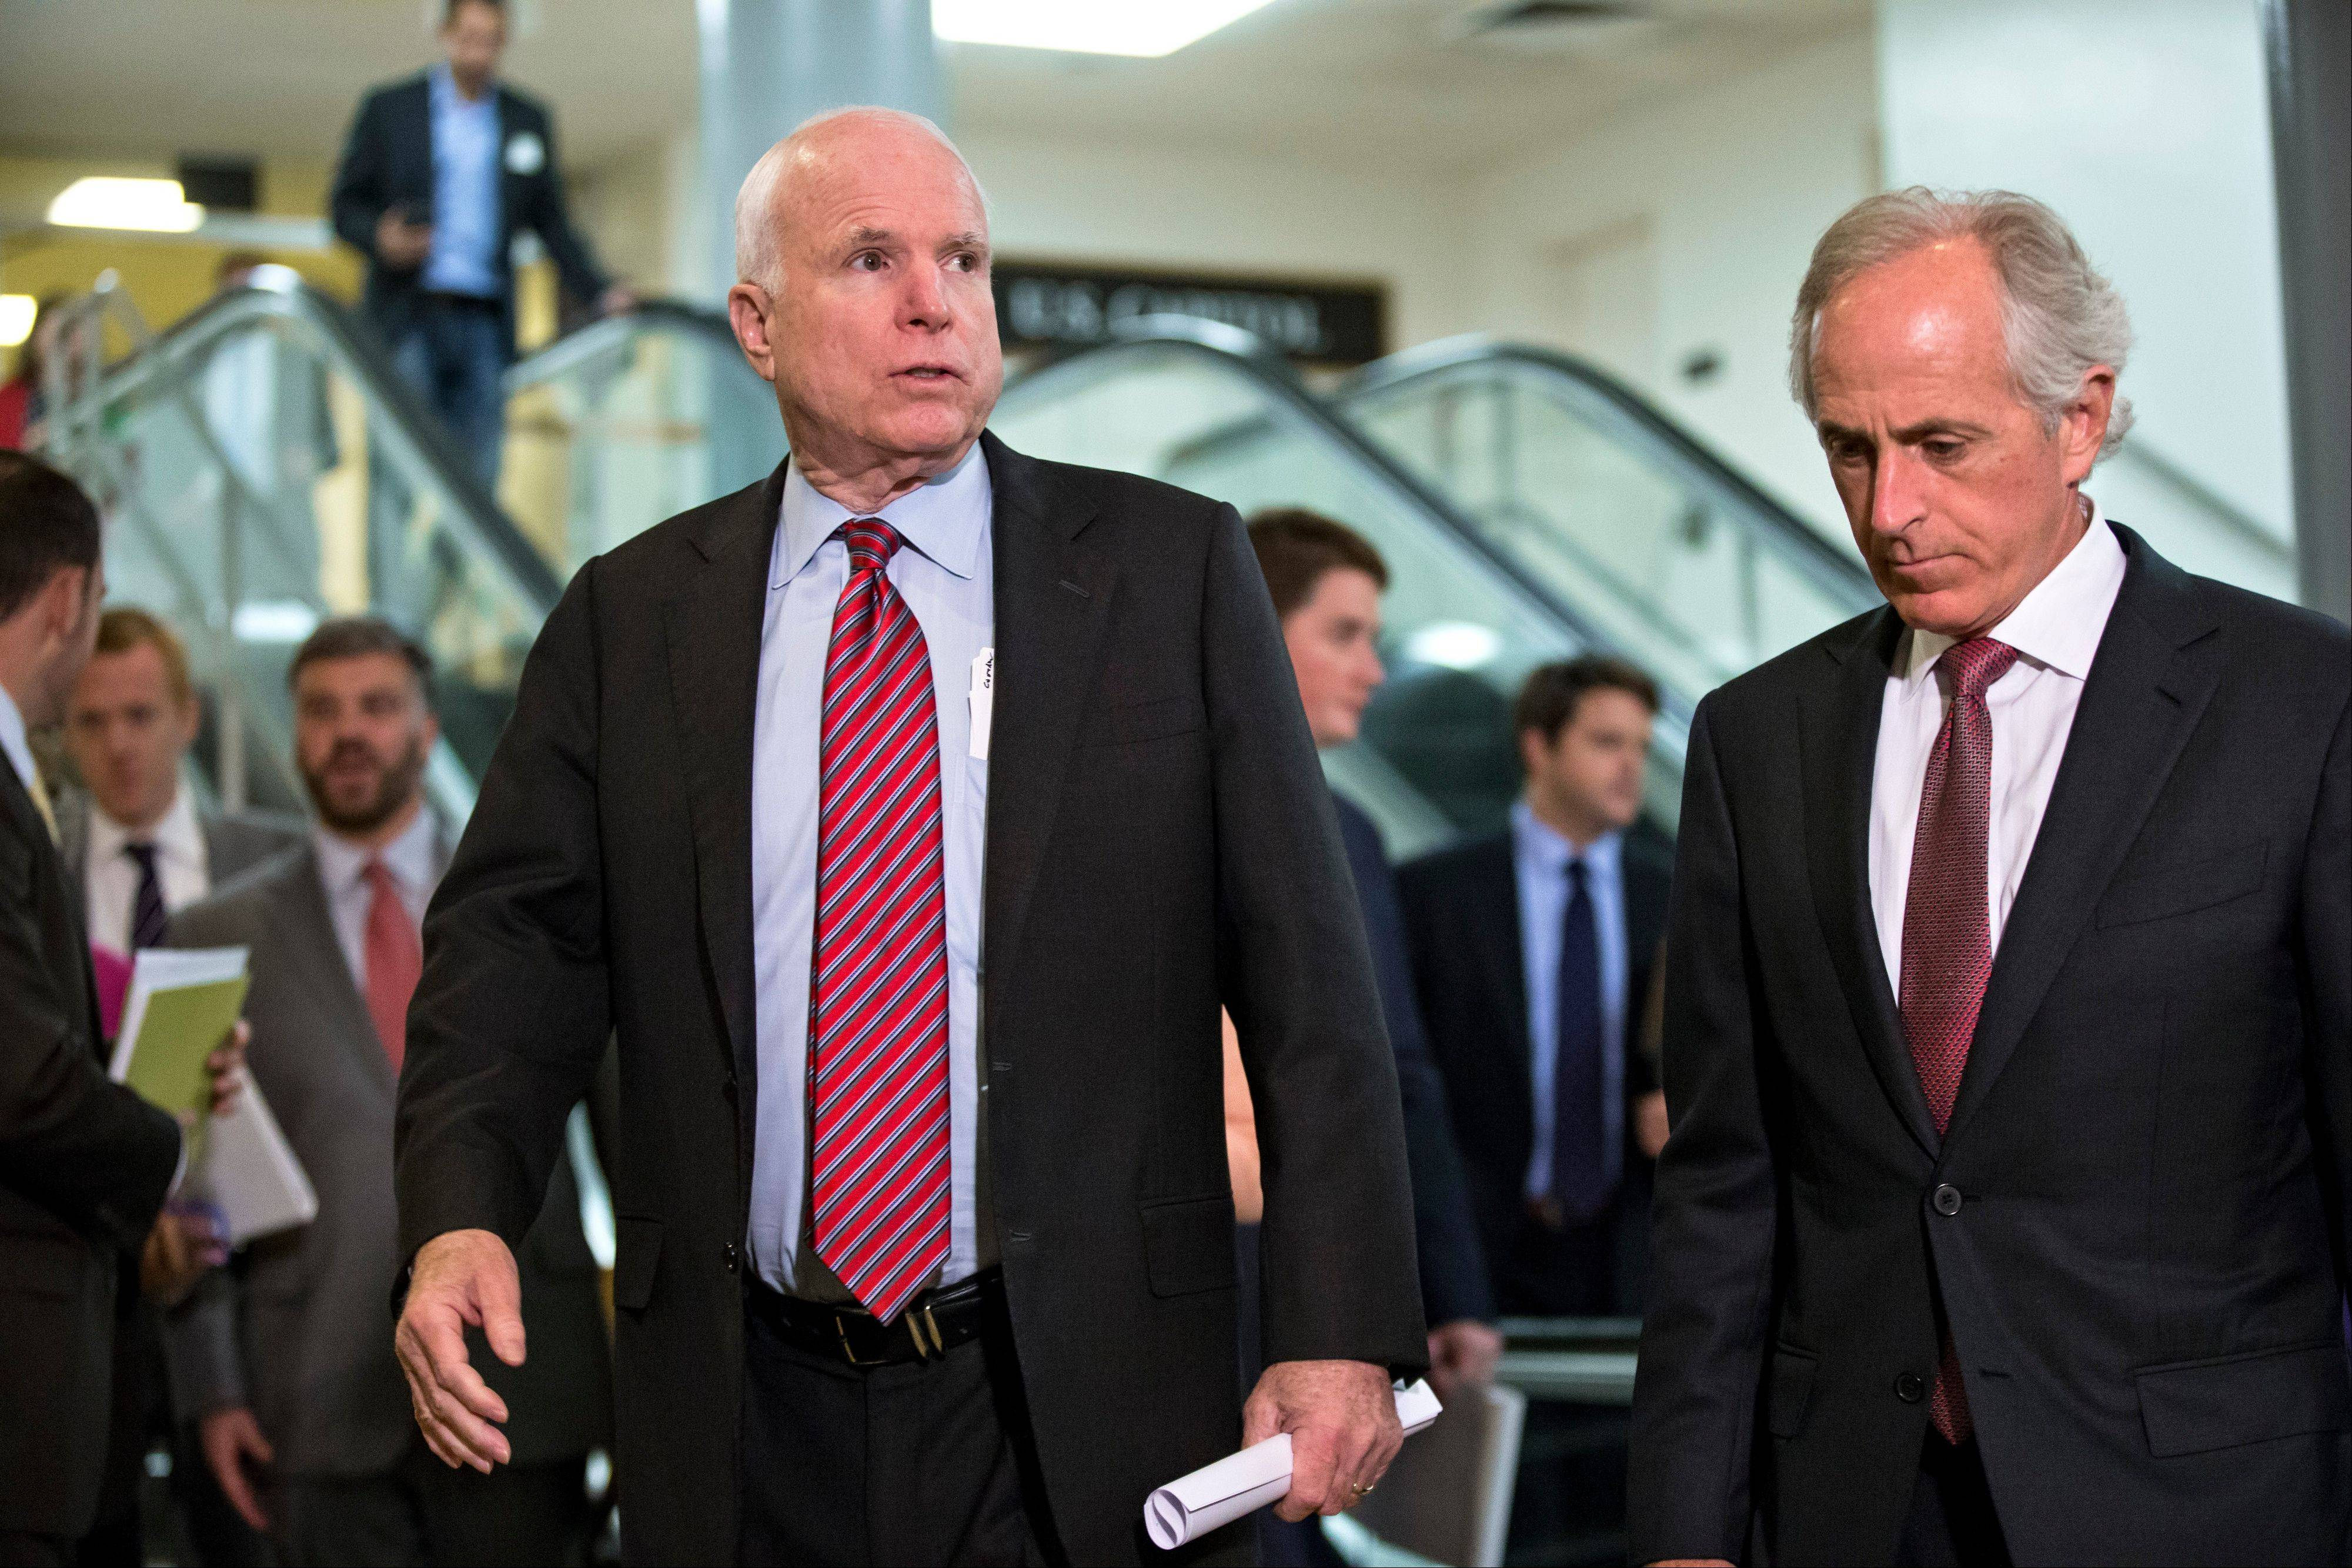 Republican Sen. John McCain insisted he is �more pro-Russian� than President Vladimir Putin, accusing Putin of corruption, repression and self-serving rule in an opinion piece for Pravda newspaper answering the Russian leader�s broadside last week in The New York Times.